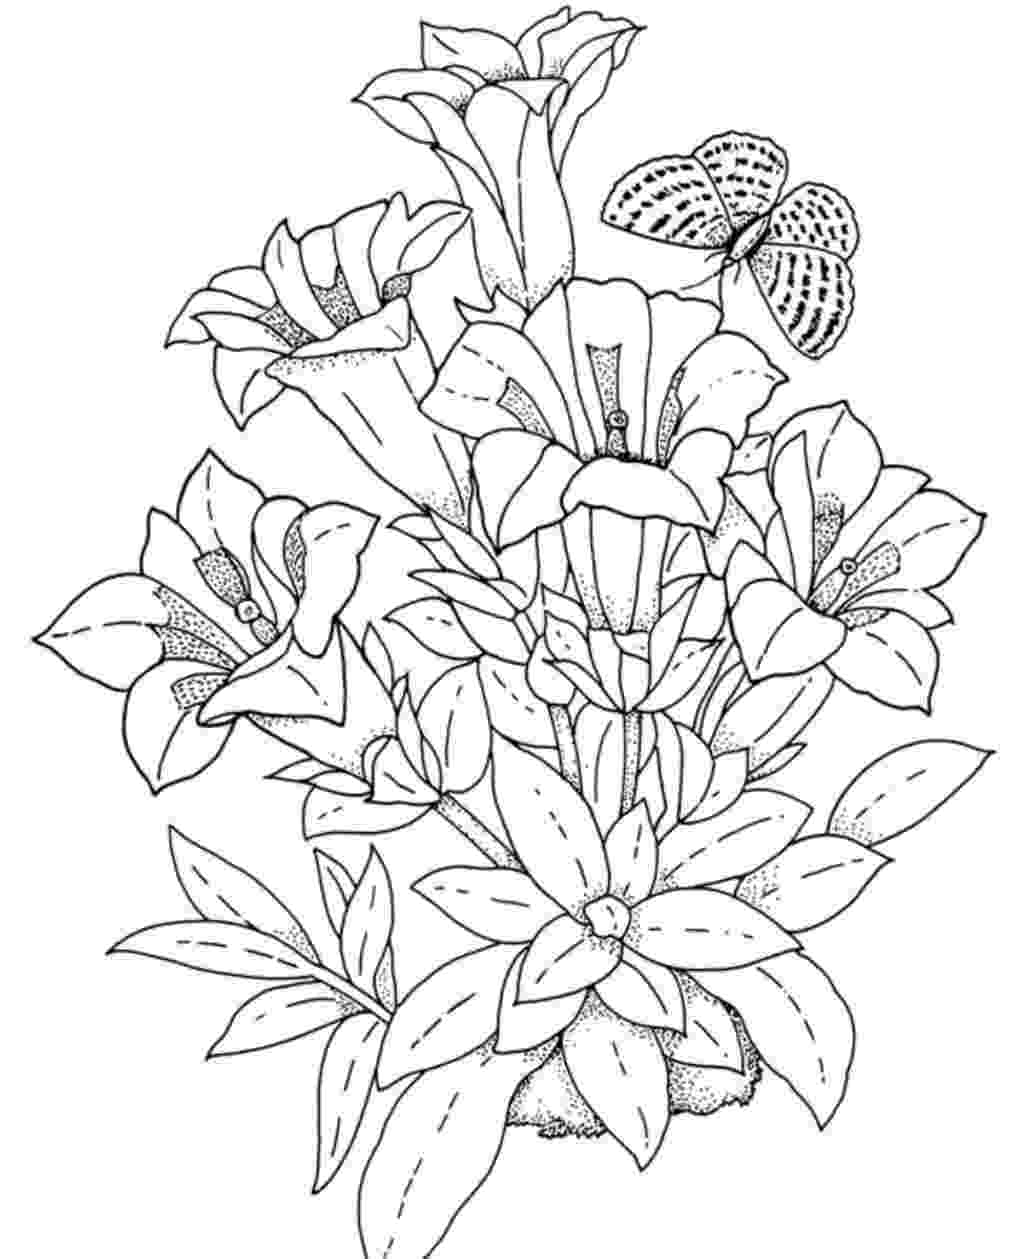 detailed flower coloring pages detailed flower coloring pages to download and print for free pages flower coloring detailed